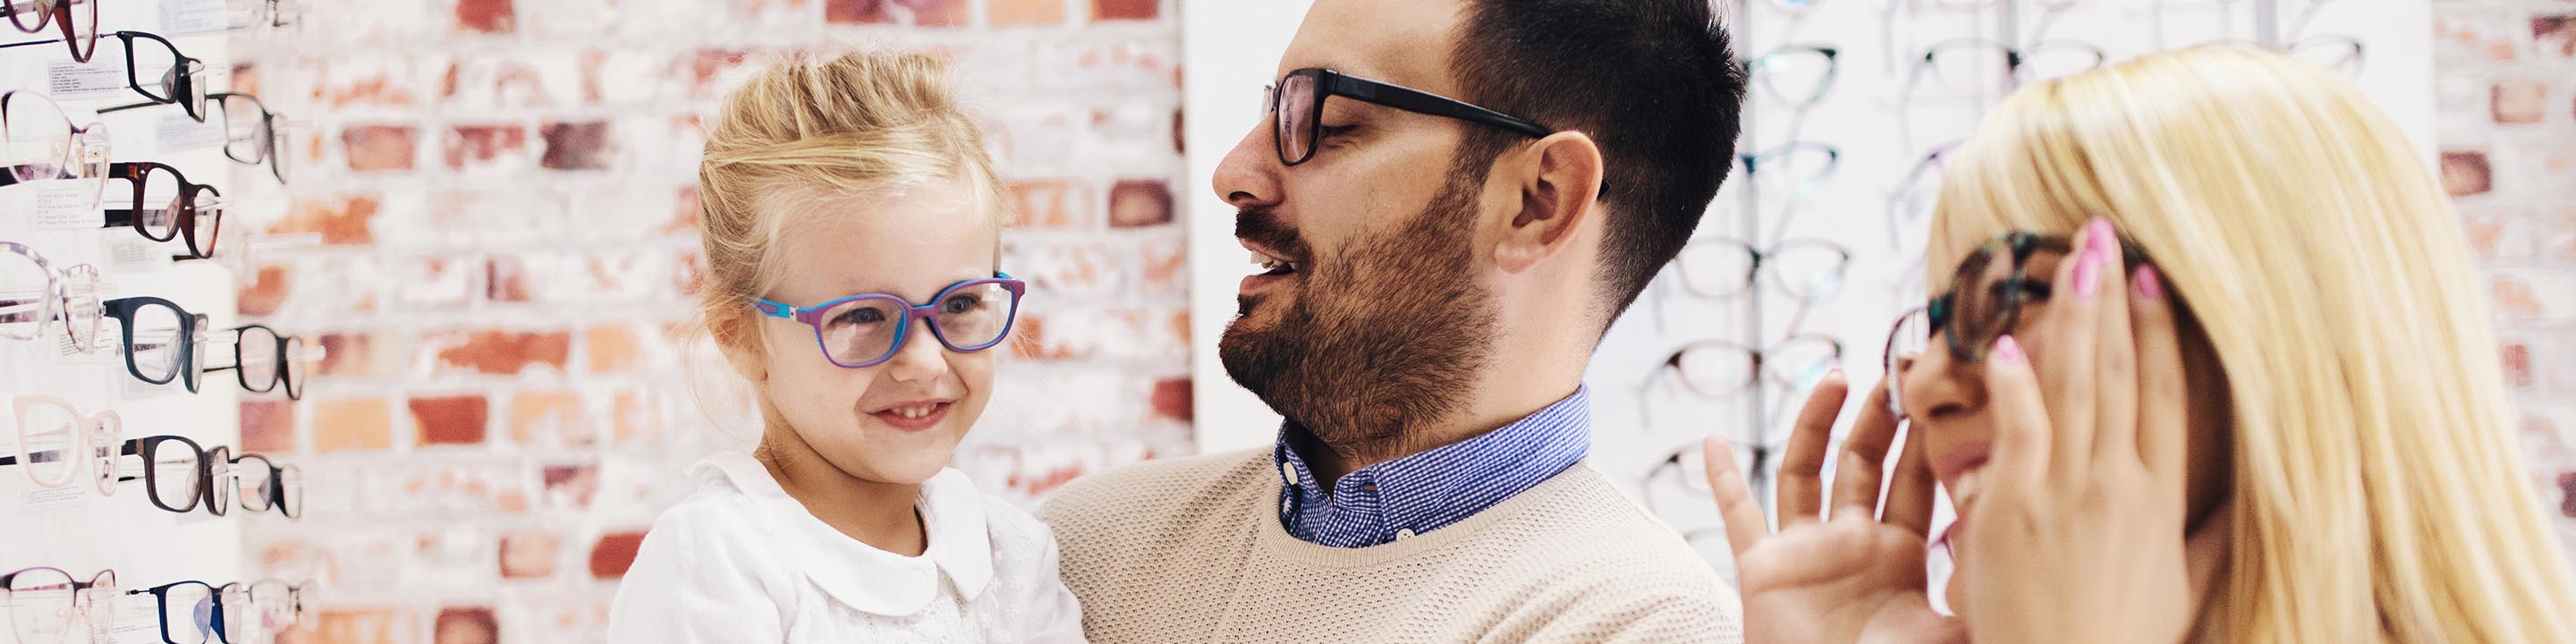 Image of daughter with father and mother trying on eye glasses.